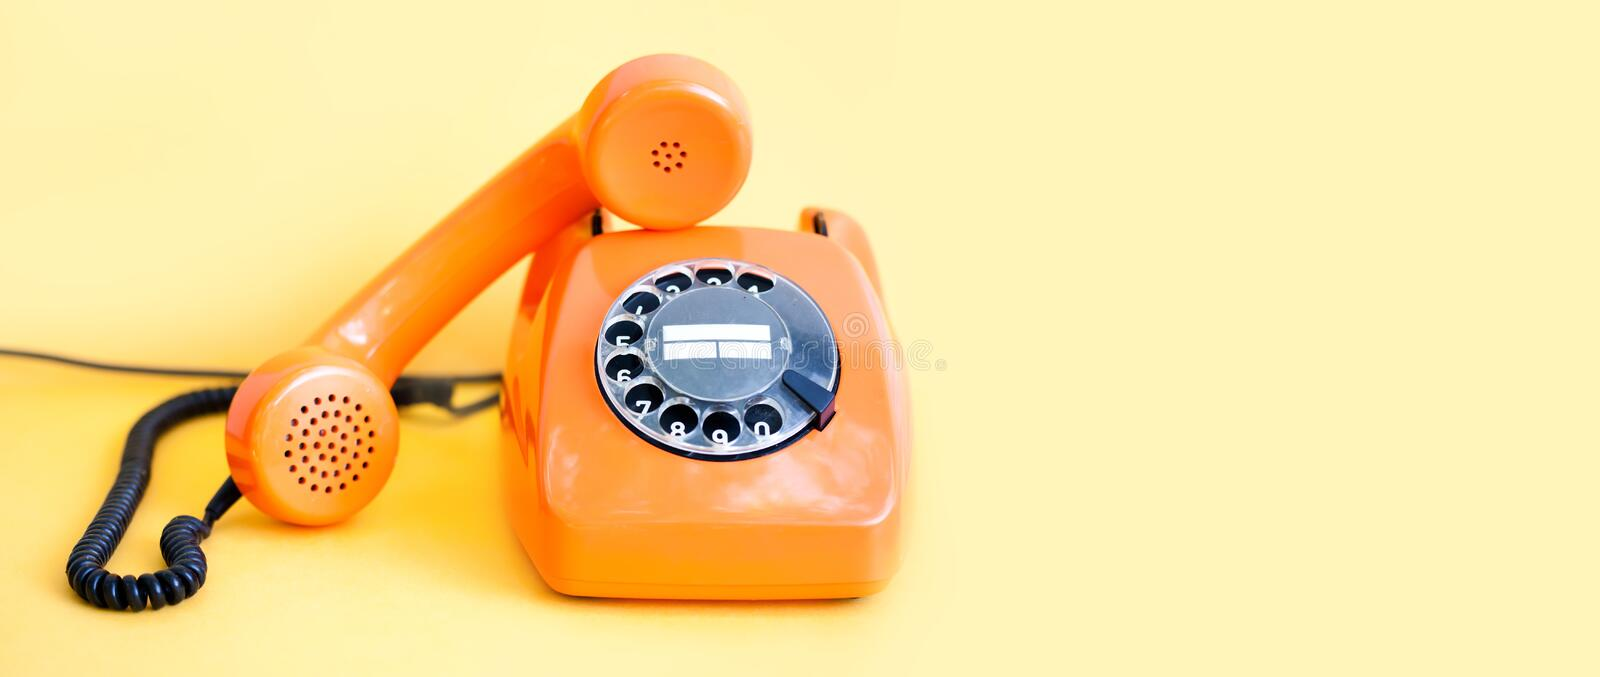 Vintage phone busy handset receiver on yellow background. Retro style orange telephone communication call center concept royalty free stock photo